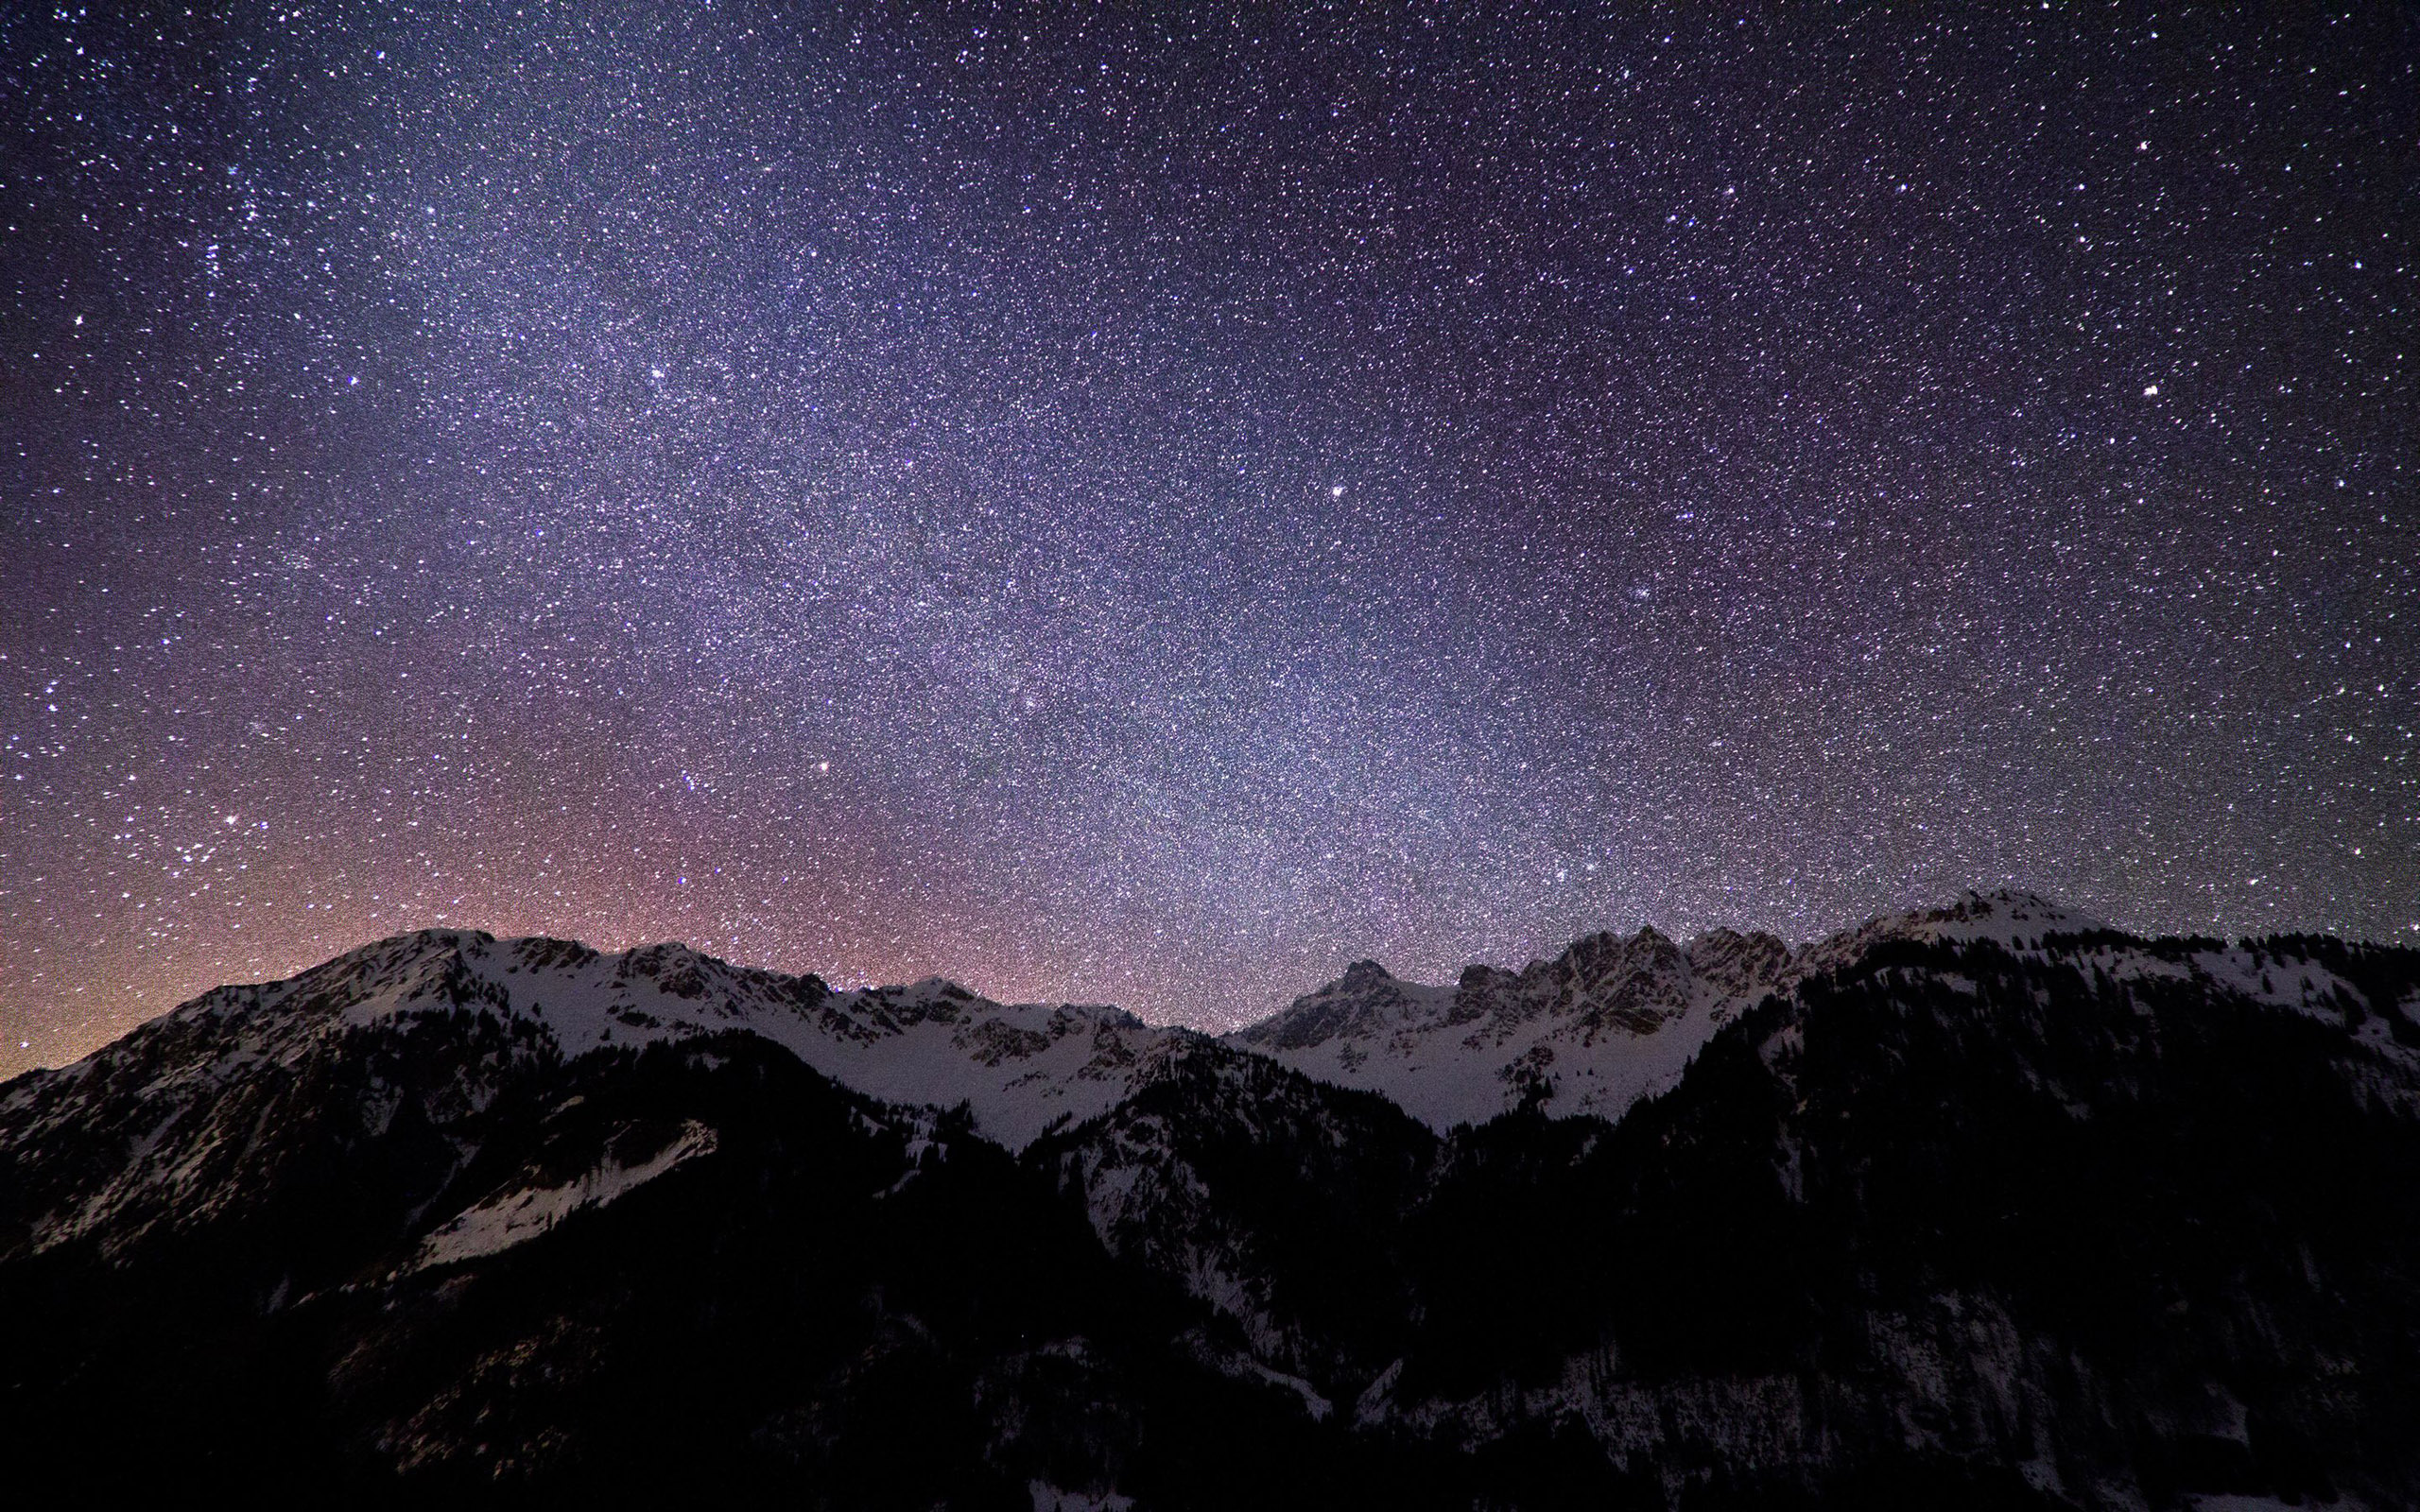 Night Lights in The Sky Wallpaper 2560x1600px